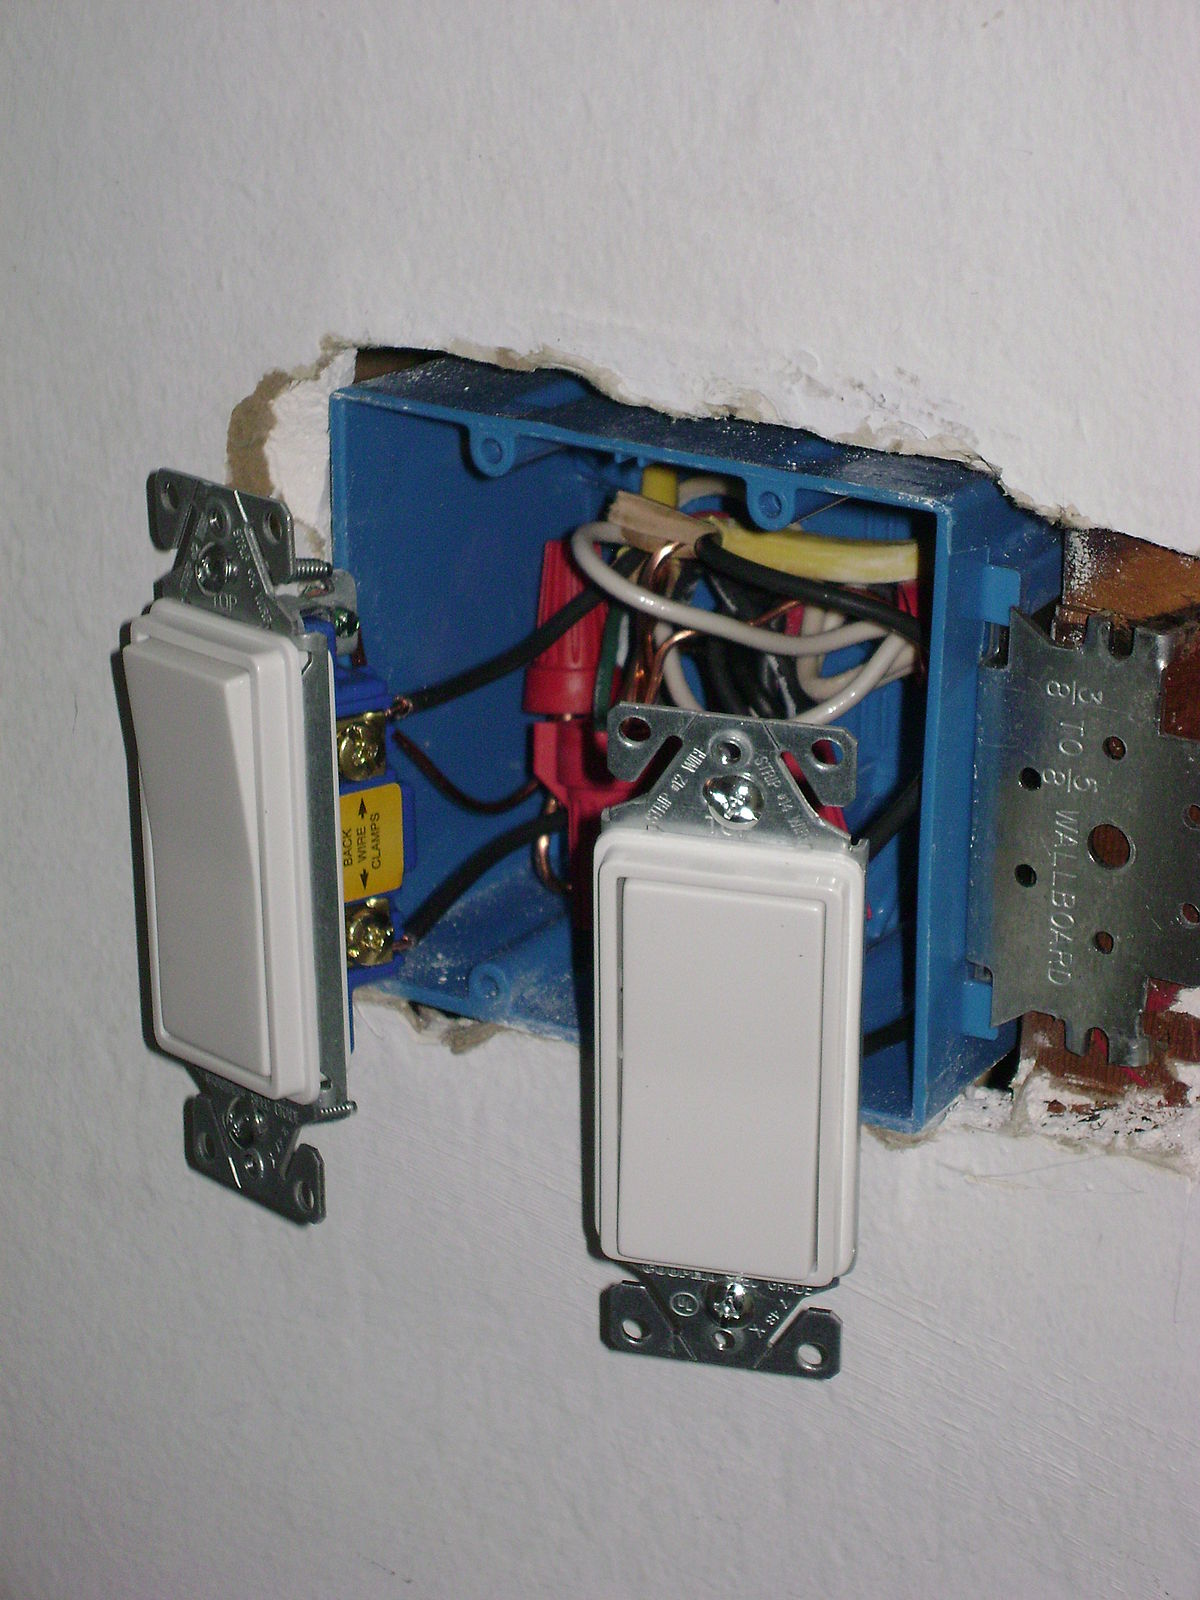 Light switch - Wikipedia on light switch and outlet wiring diagram, 110 outlet wiring diagram, single pole outlet wiring diagram, electric outlet wiring diagram, standard outlet wiring diagram, switched outlet wiring diagram,